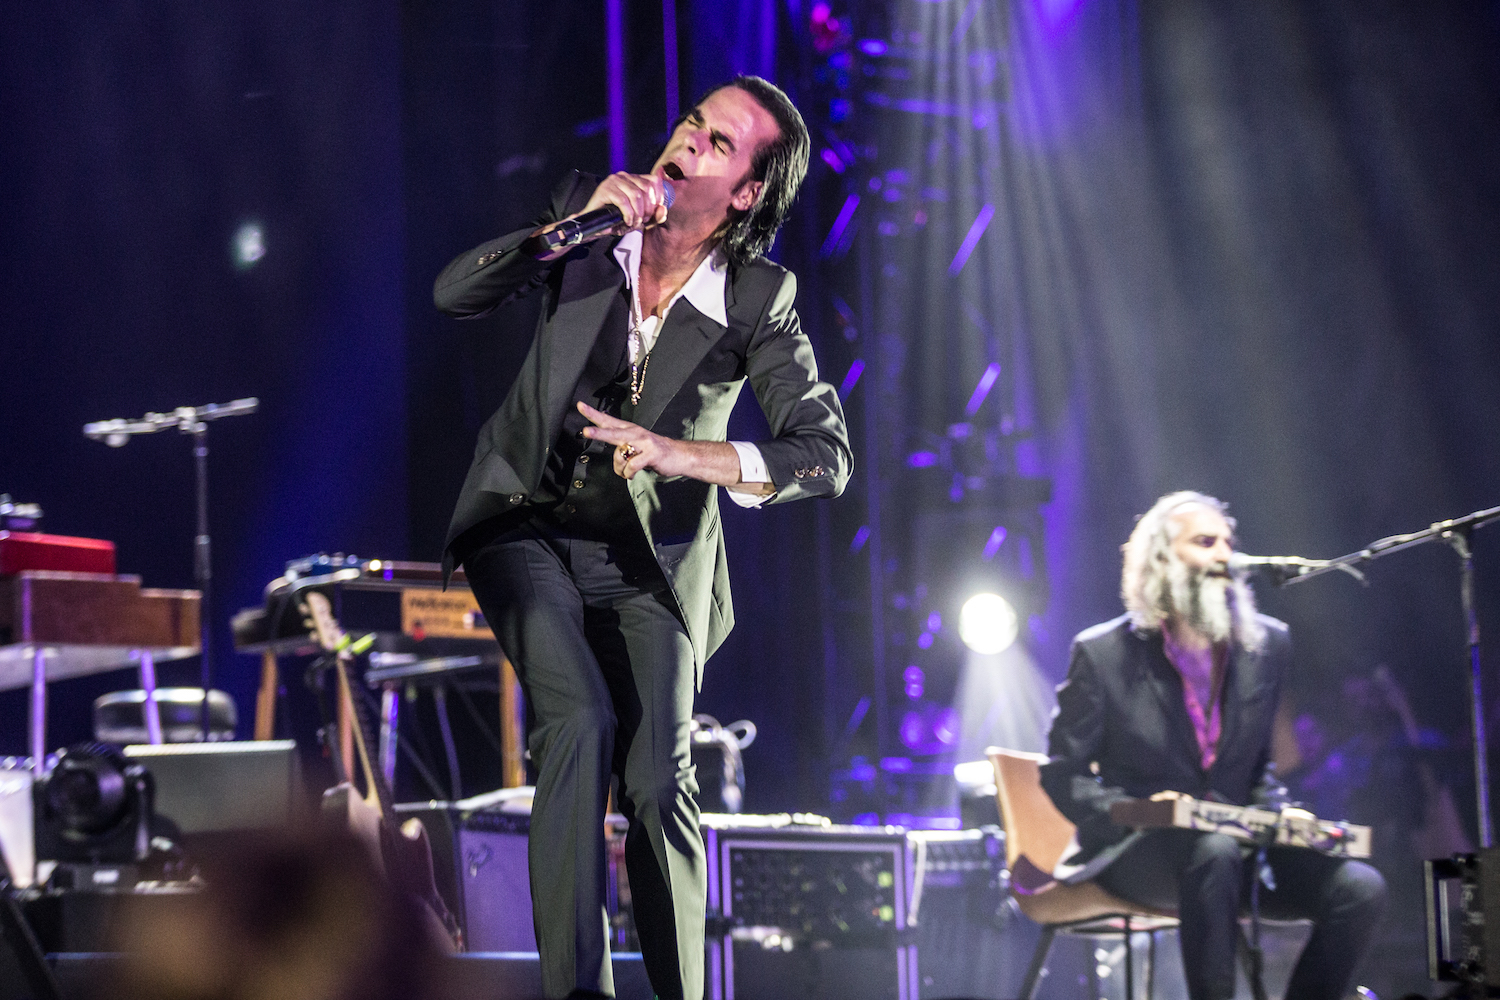 Nick Cave & The Bad Seeds start Primavera Sound 2018 with a show of crushing genius